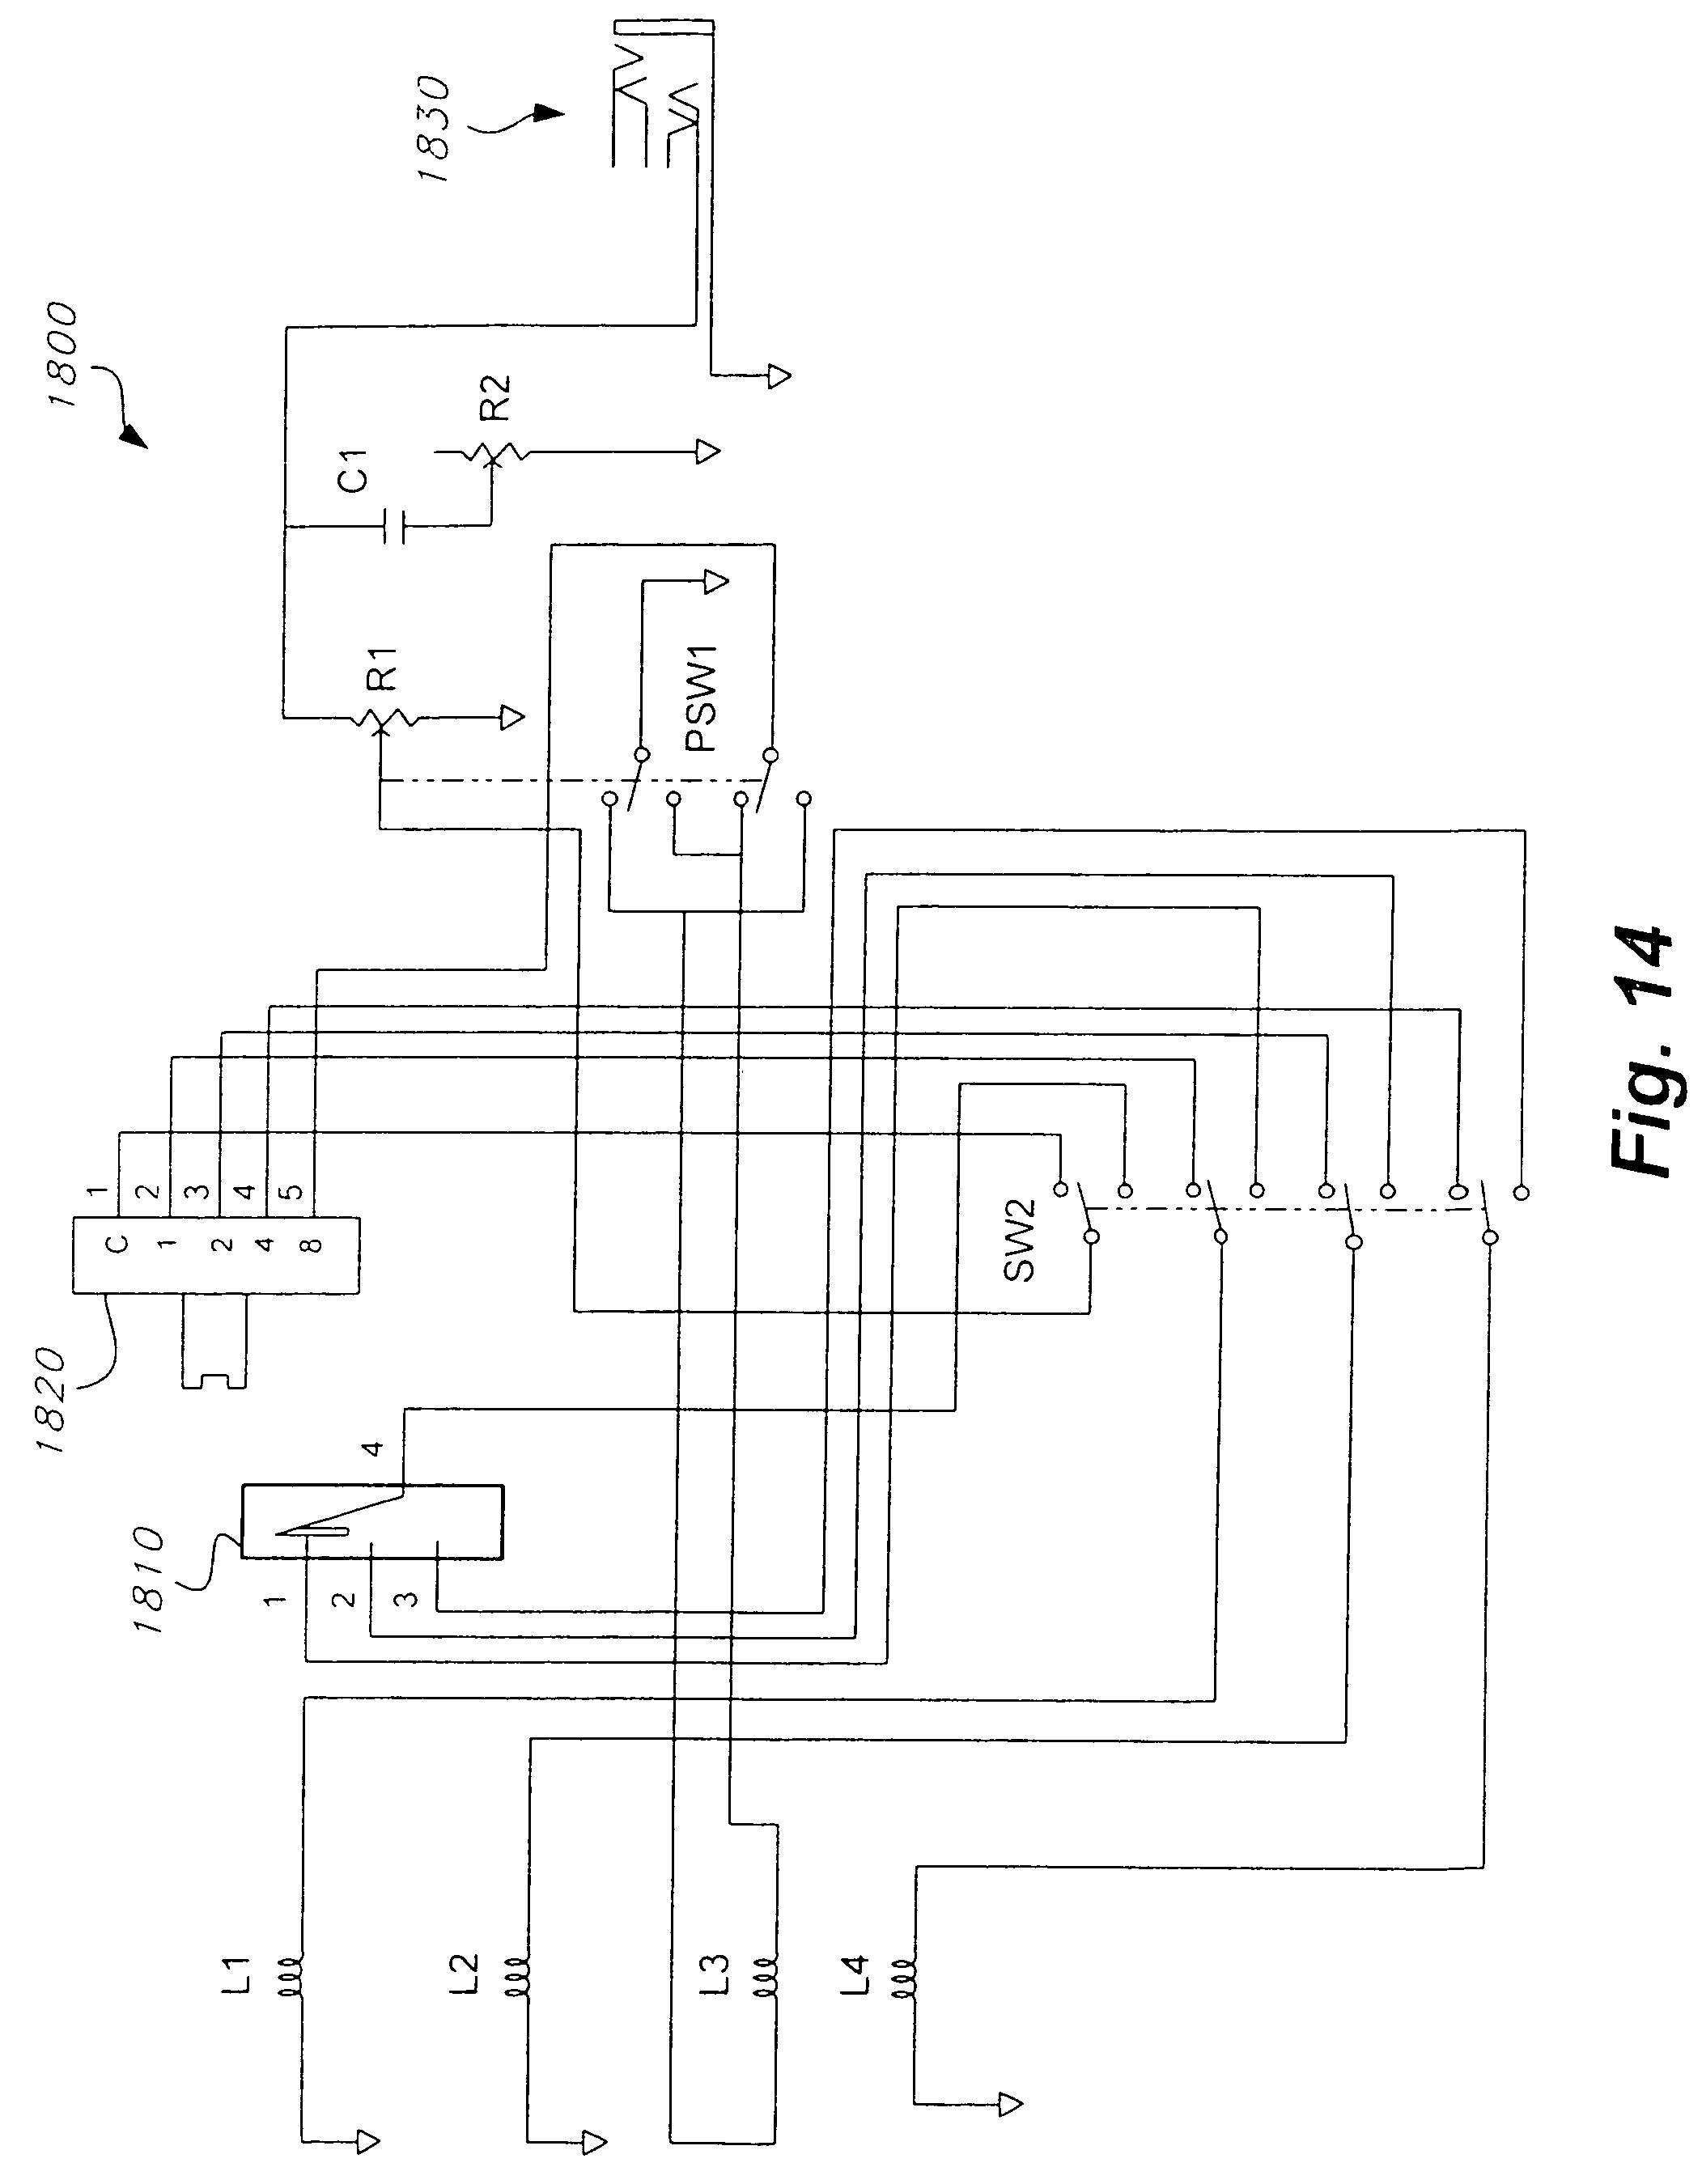 Fuel Pump Relay Location On 2001 F150 in addition Chrysler Electronic Ignition Wiring Diagrams also 5tp0f Chrysler Town Country Won T Start likewise Wiring Diagram For Jeep Mander as well 2007 Chrysler Crossfire Fuse Box Diagram. on chrysler crossfire wiring diagram